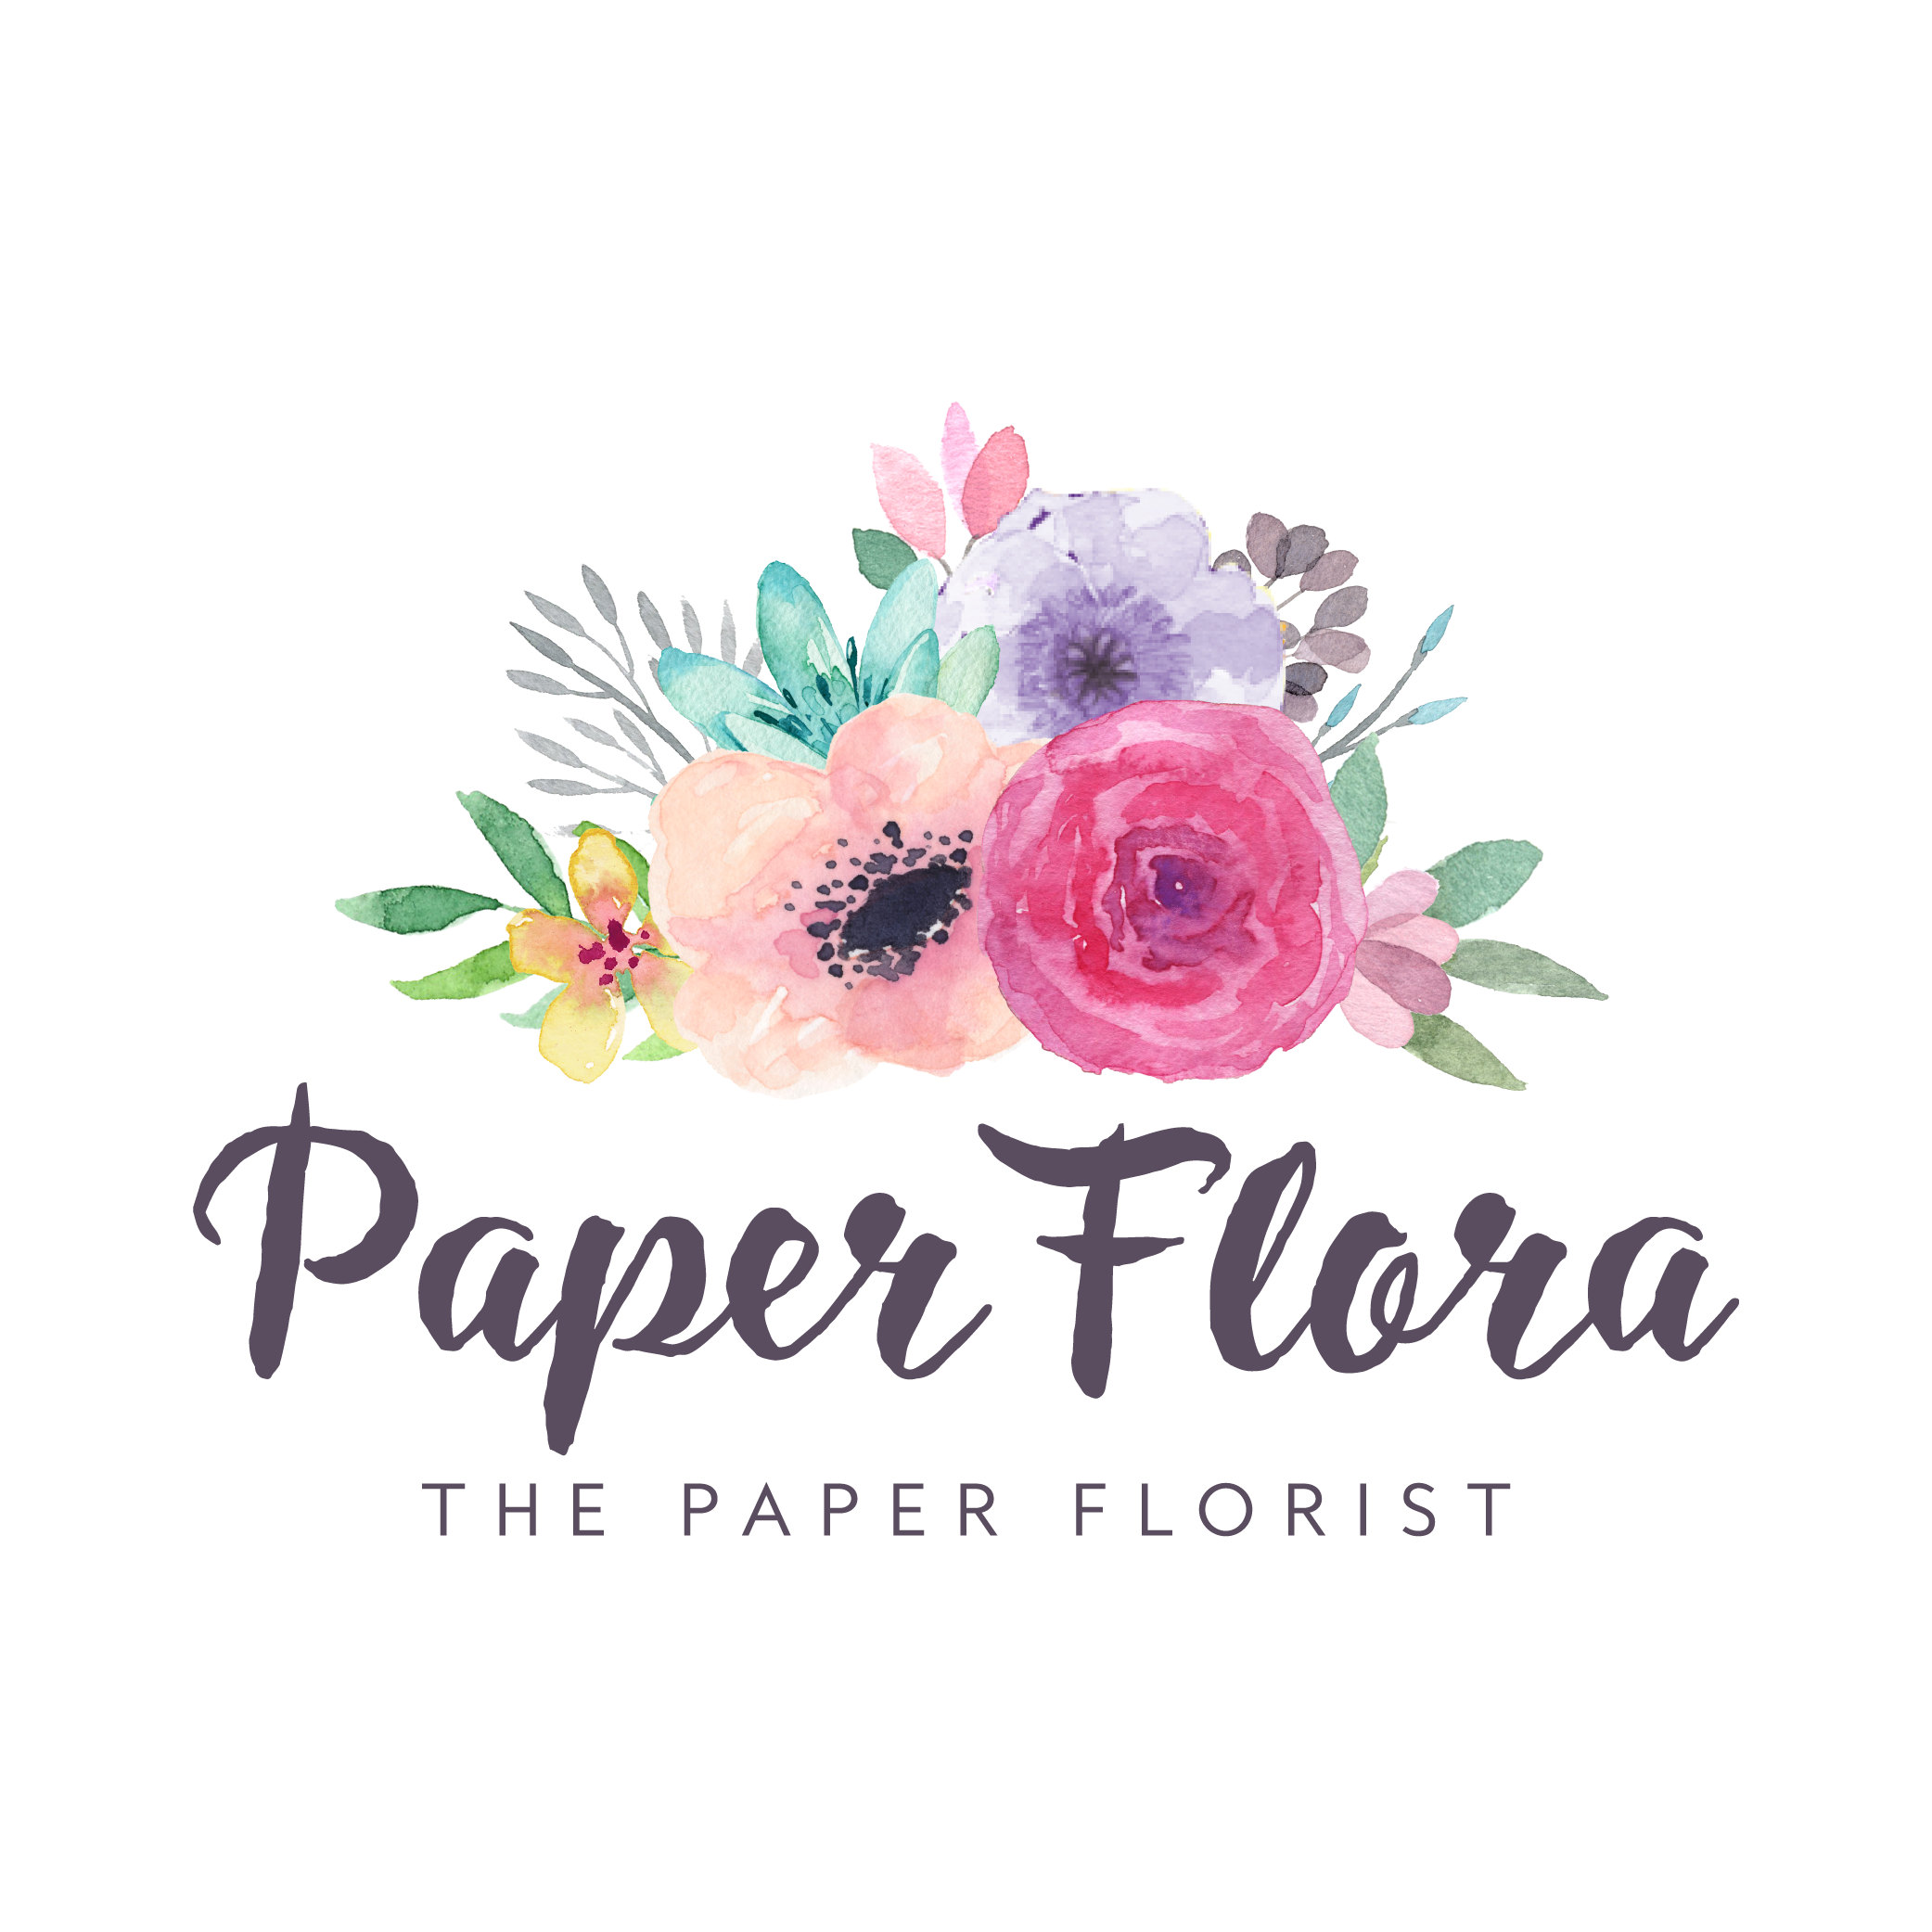 Pay for paper large flowers sale